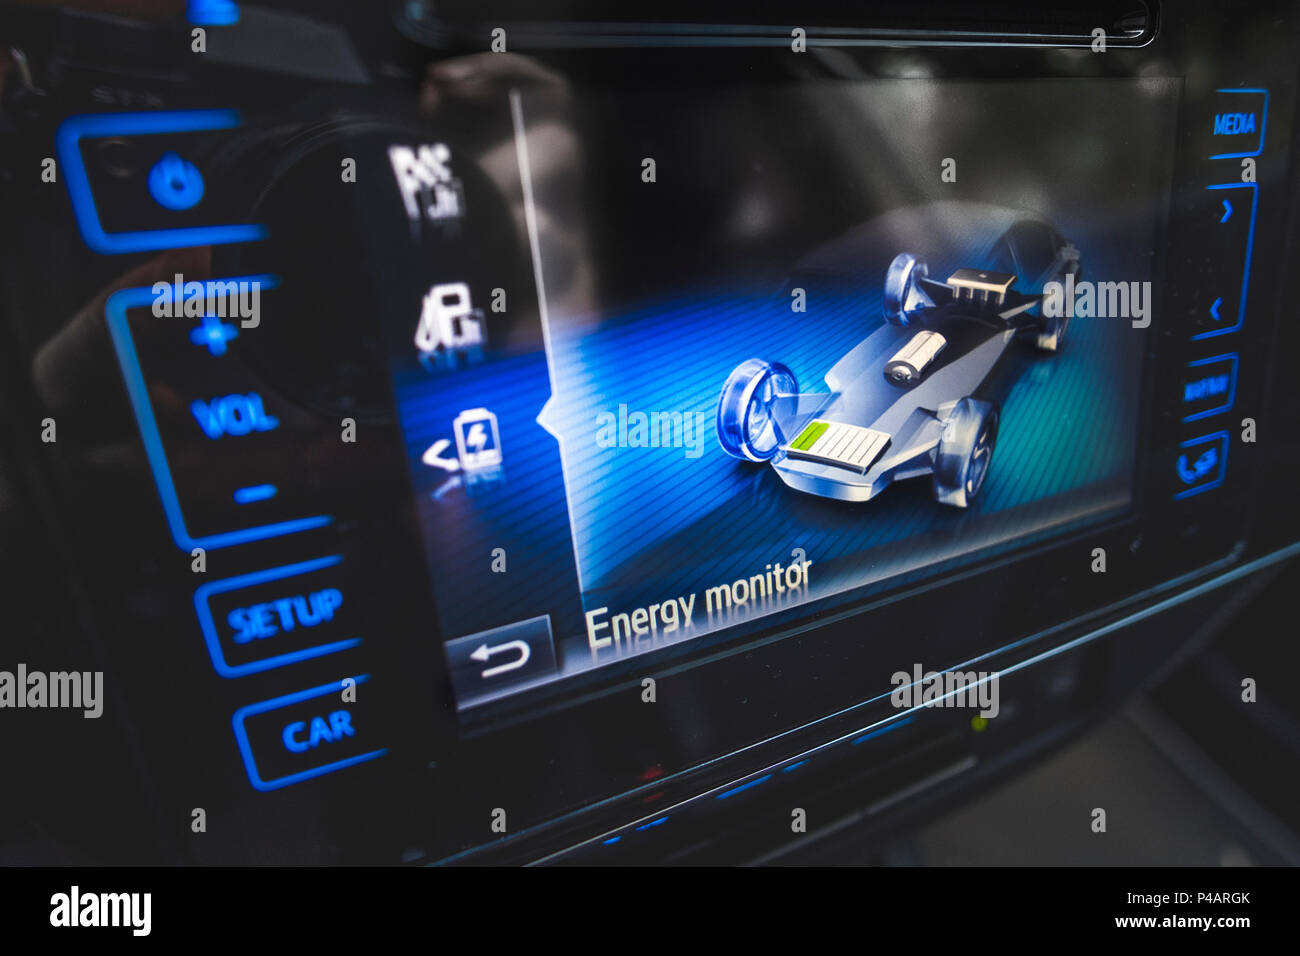 energy monitor hybrid car - Stock Image